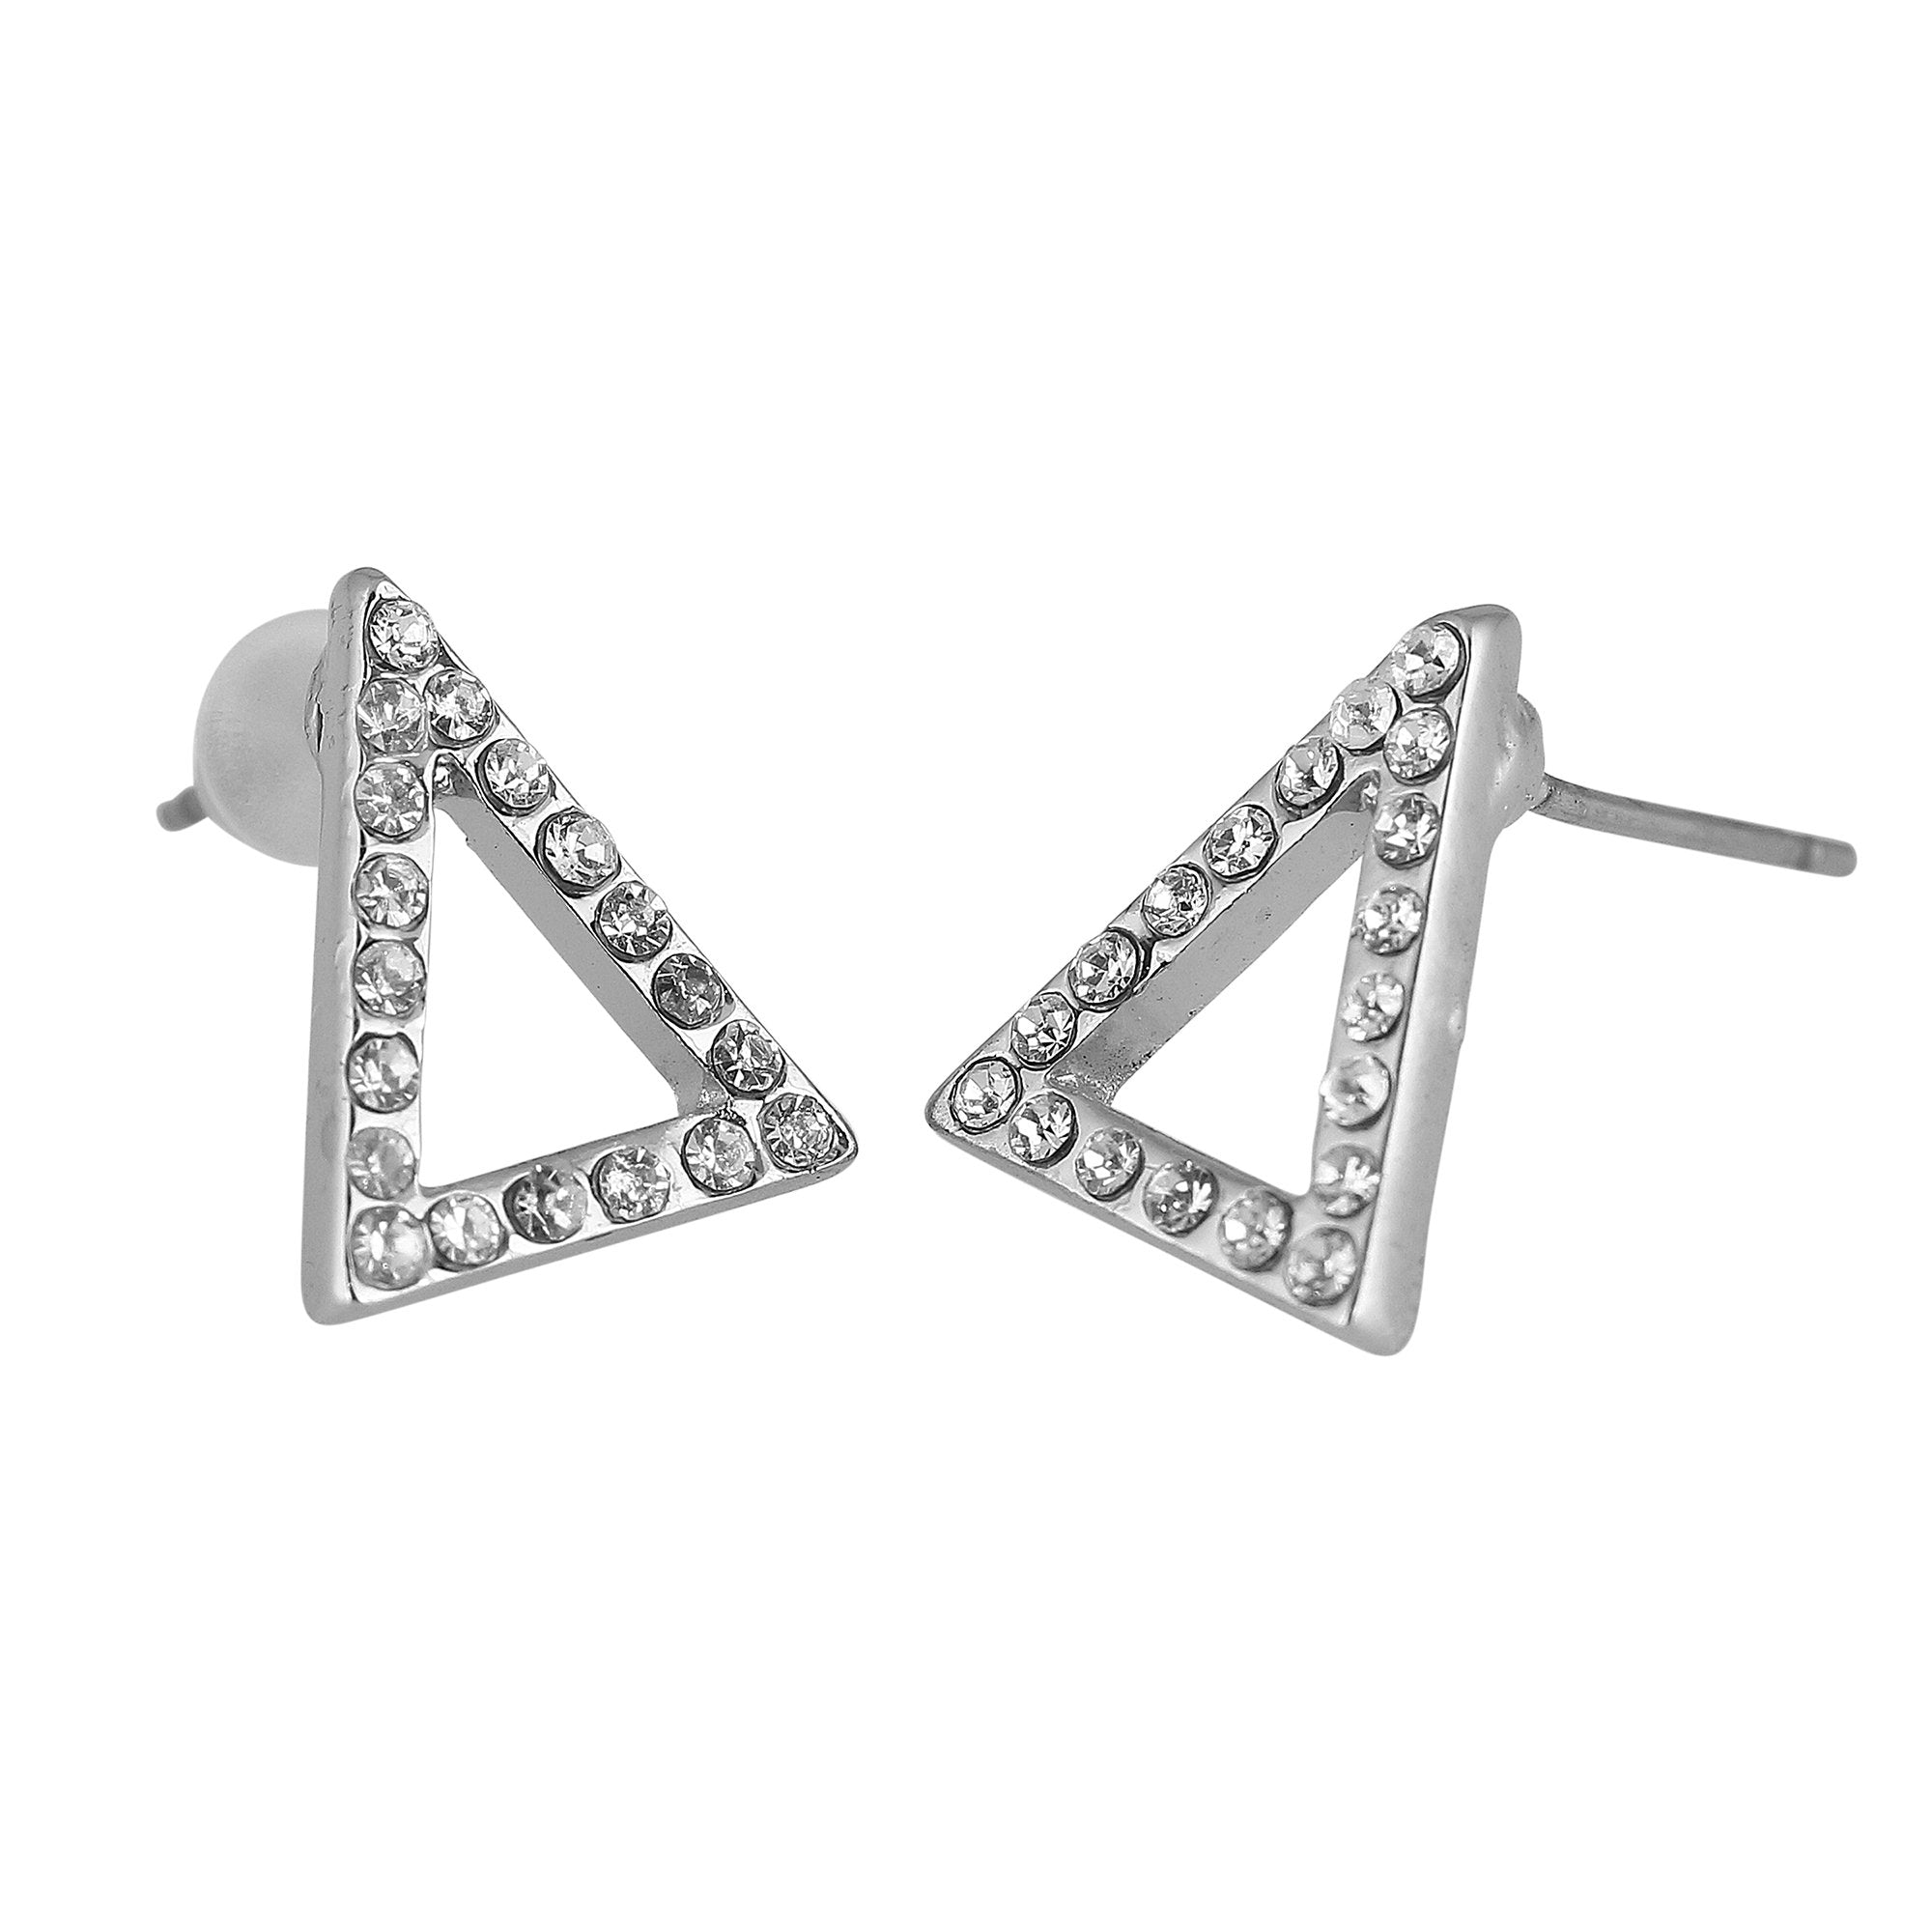 Delta Sigma Theta Inspired Sparking Pyramid Stud Earrings (Silver Tone)